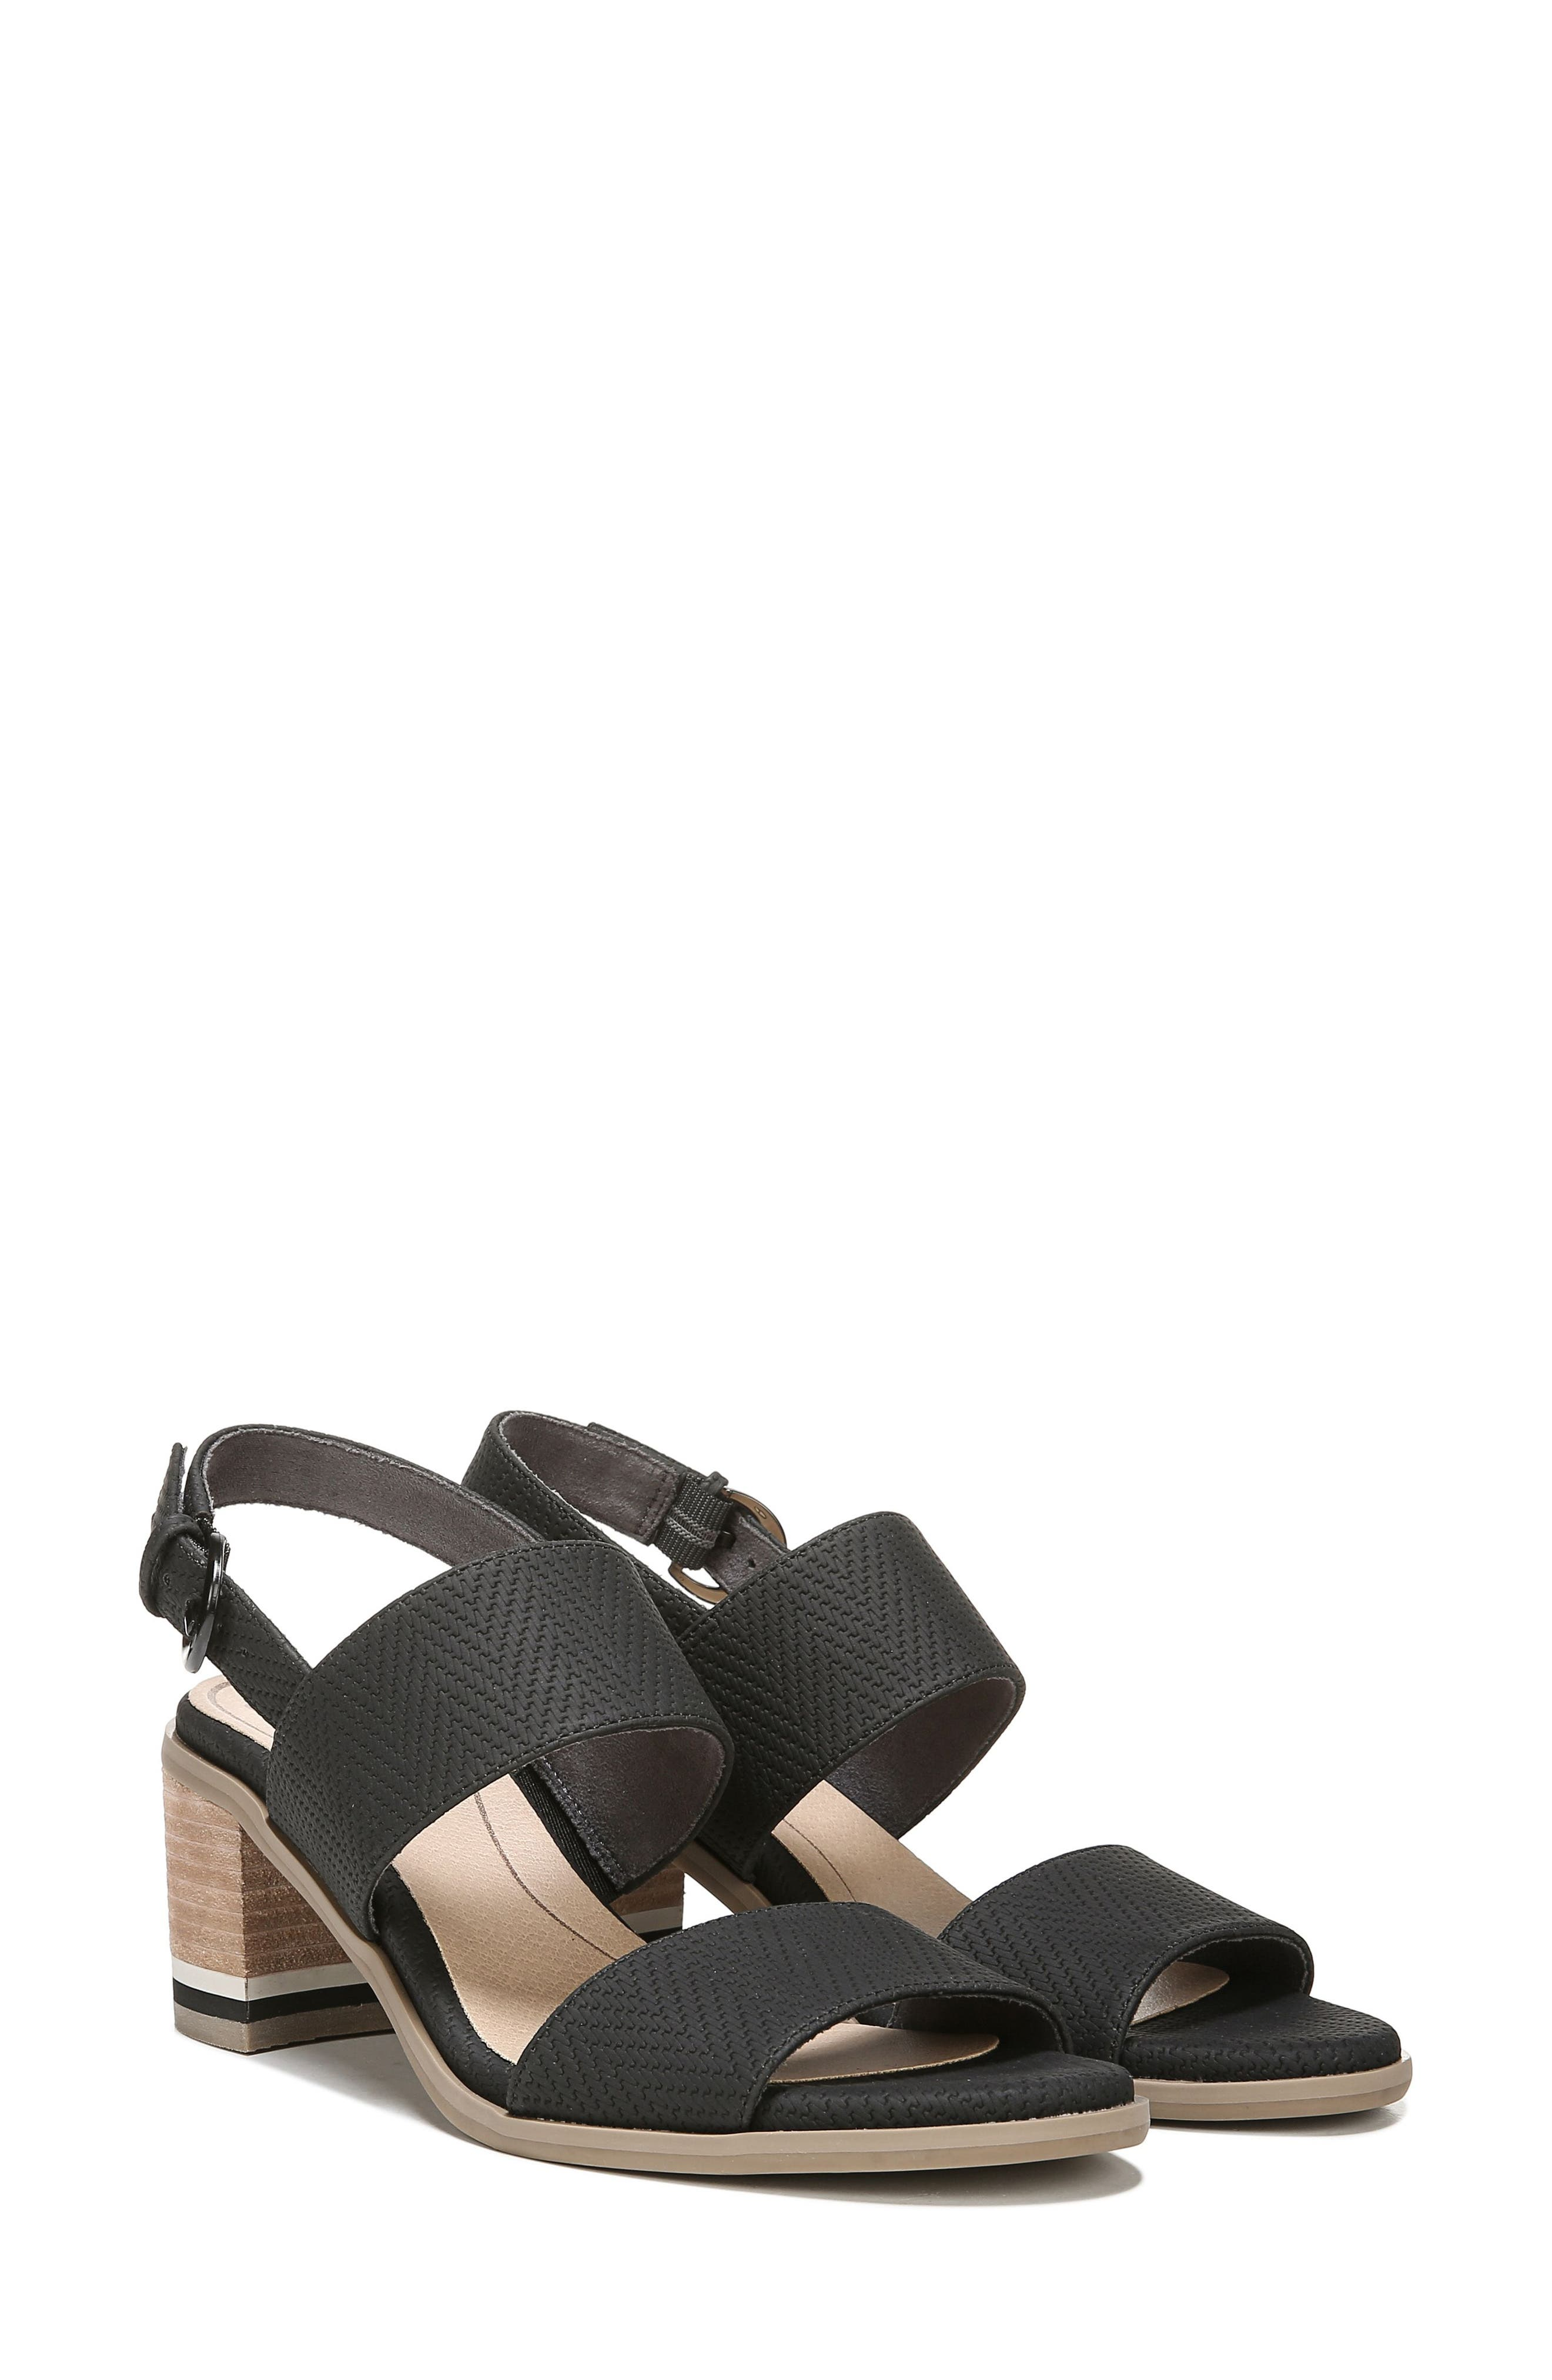 Sure Thing Sandal,                             Alternate thumbnail 8, color,                             BLACK FAUX LEATHER